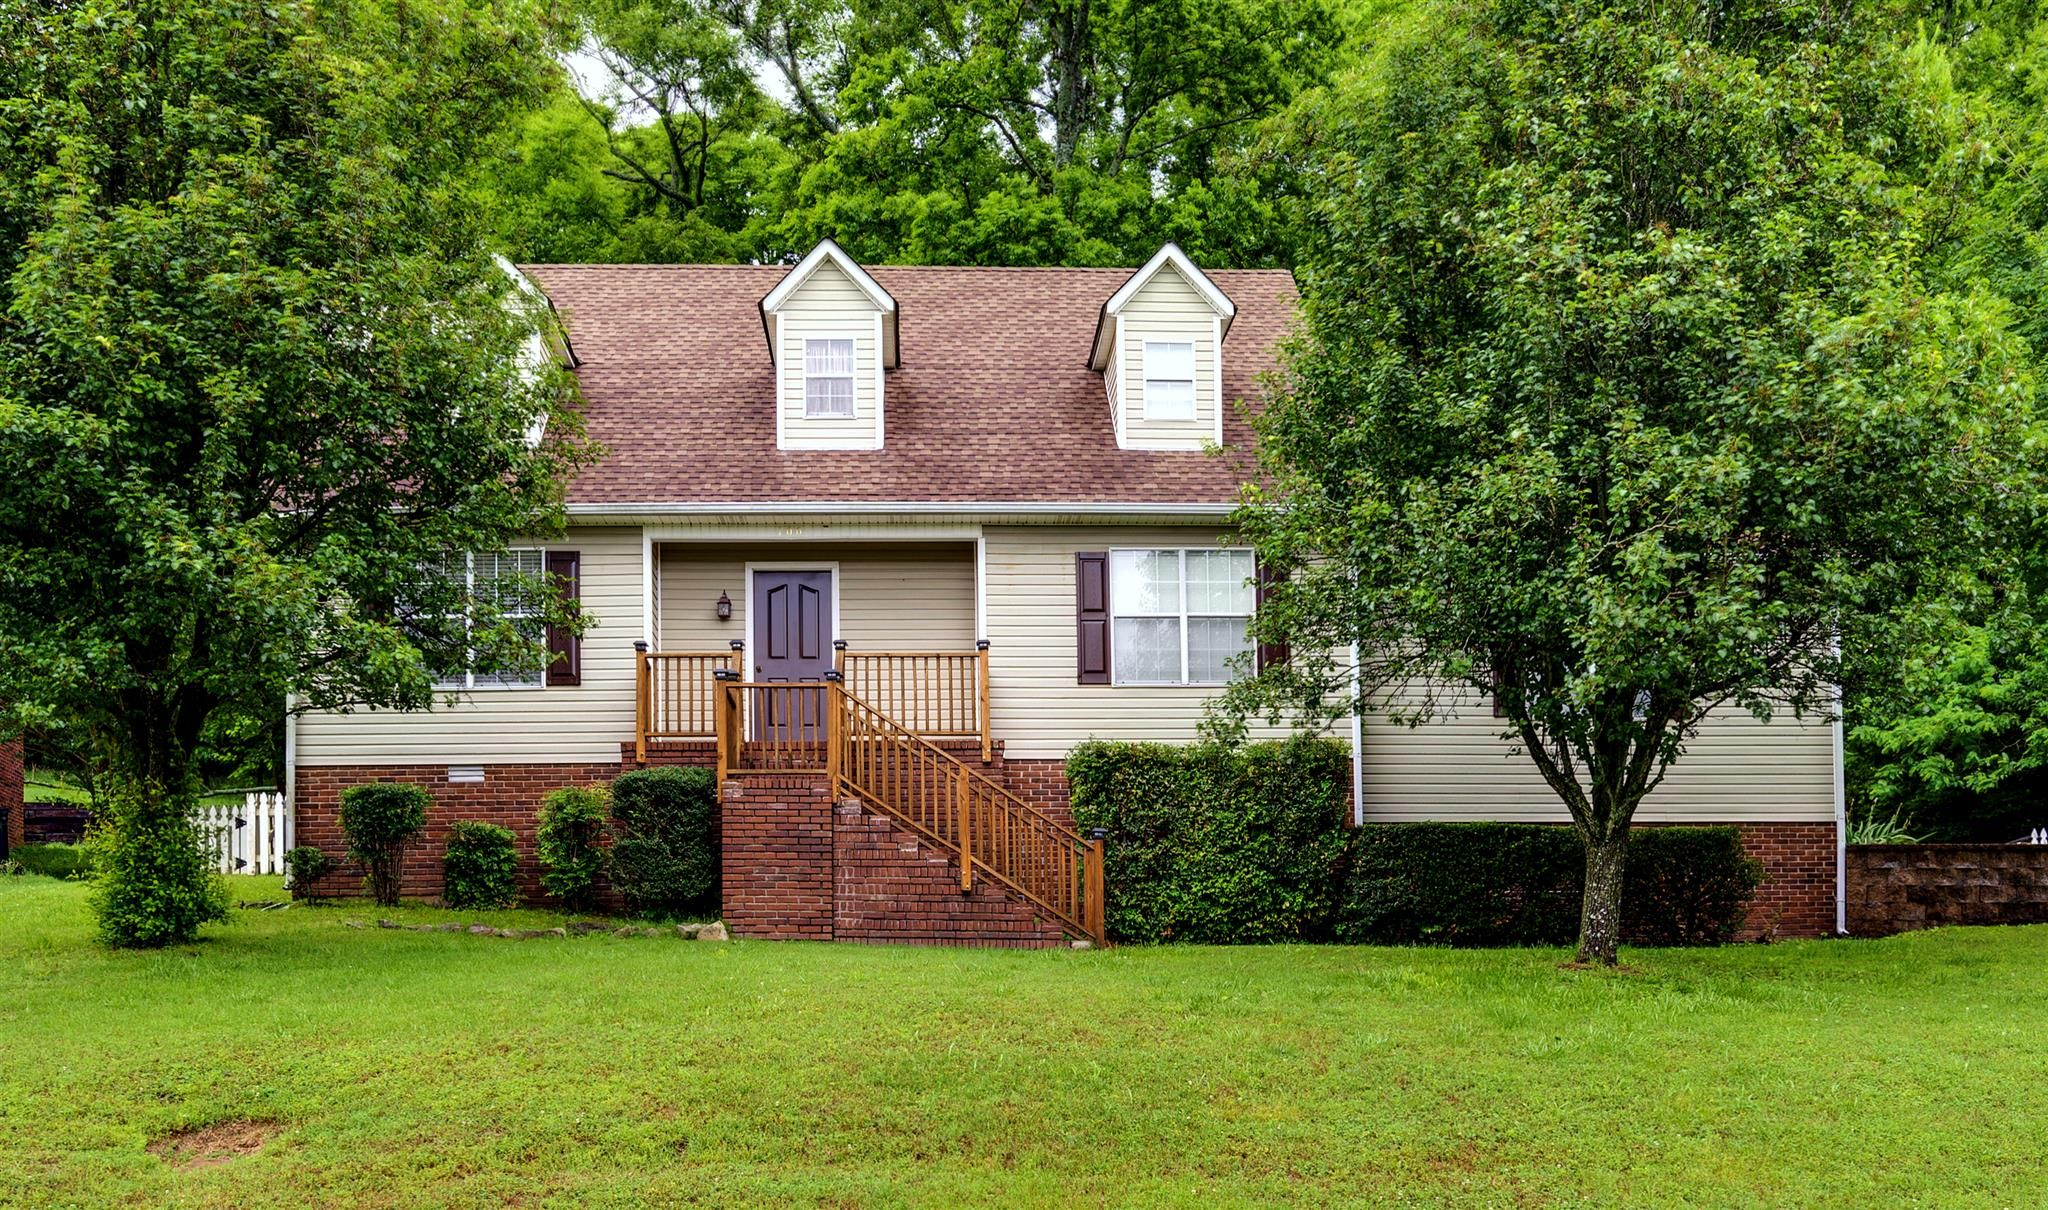 100 Mckinley Dr Columbia Tn 38401 3 Bed 2 Bath 189 900 Great 2060 Sf Home I Estate Homes My House Property